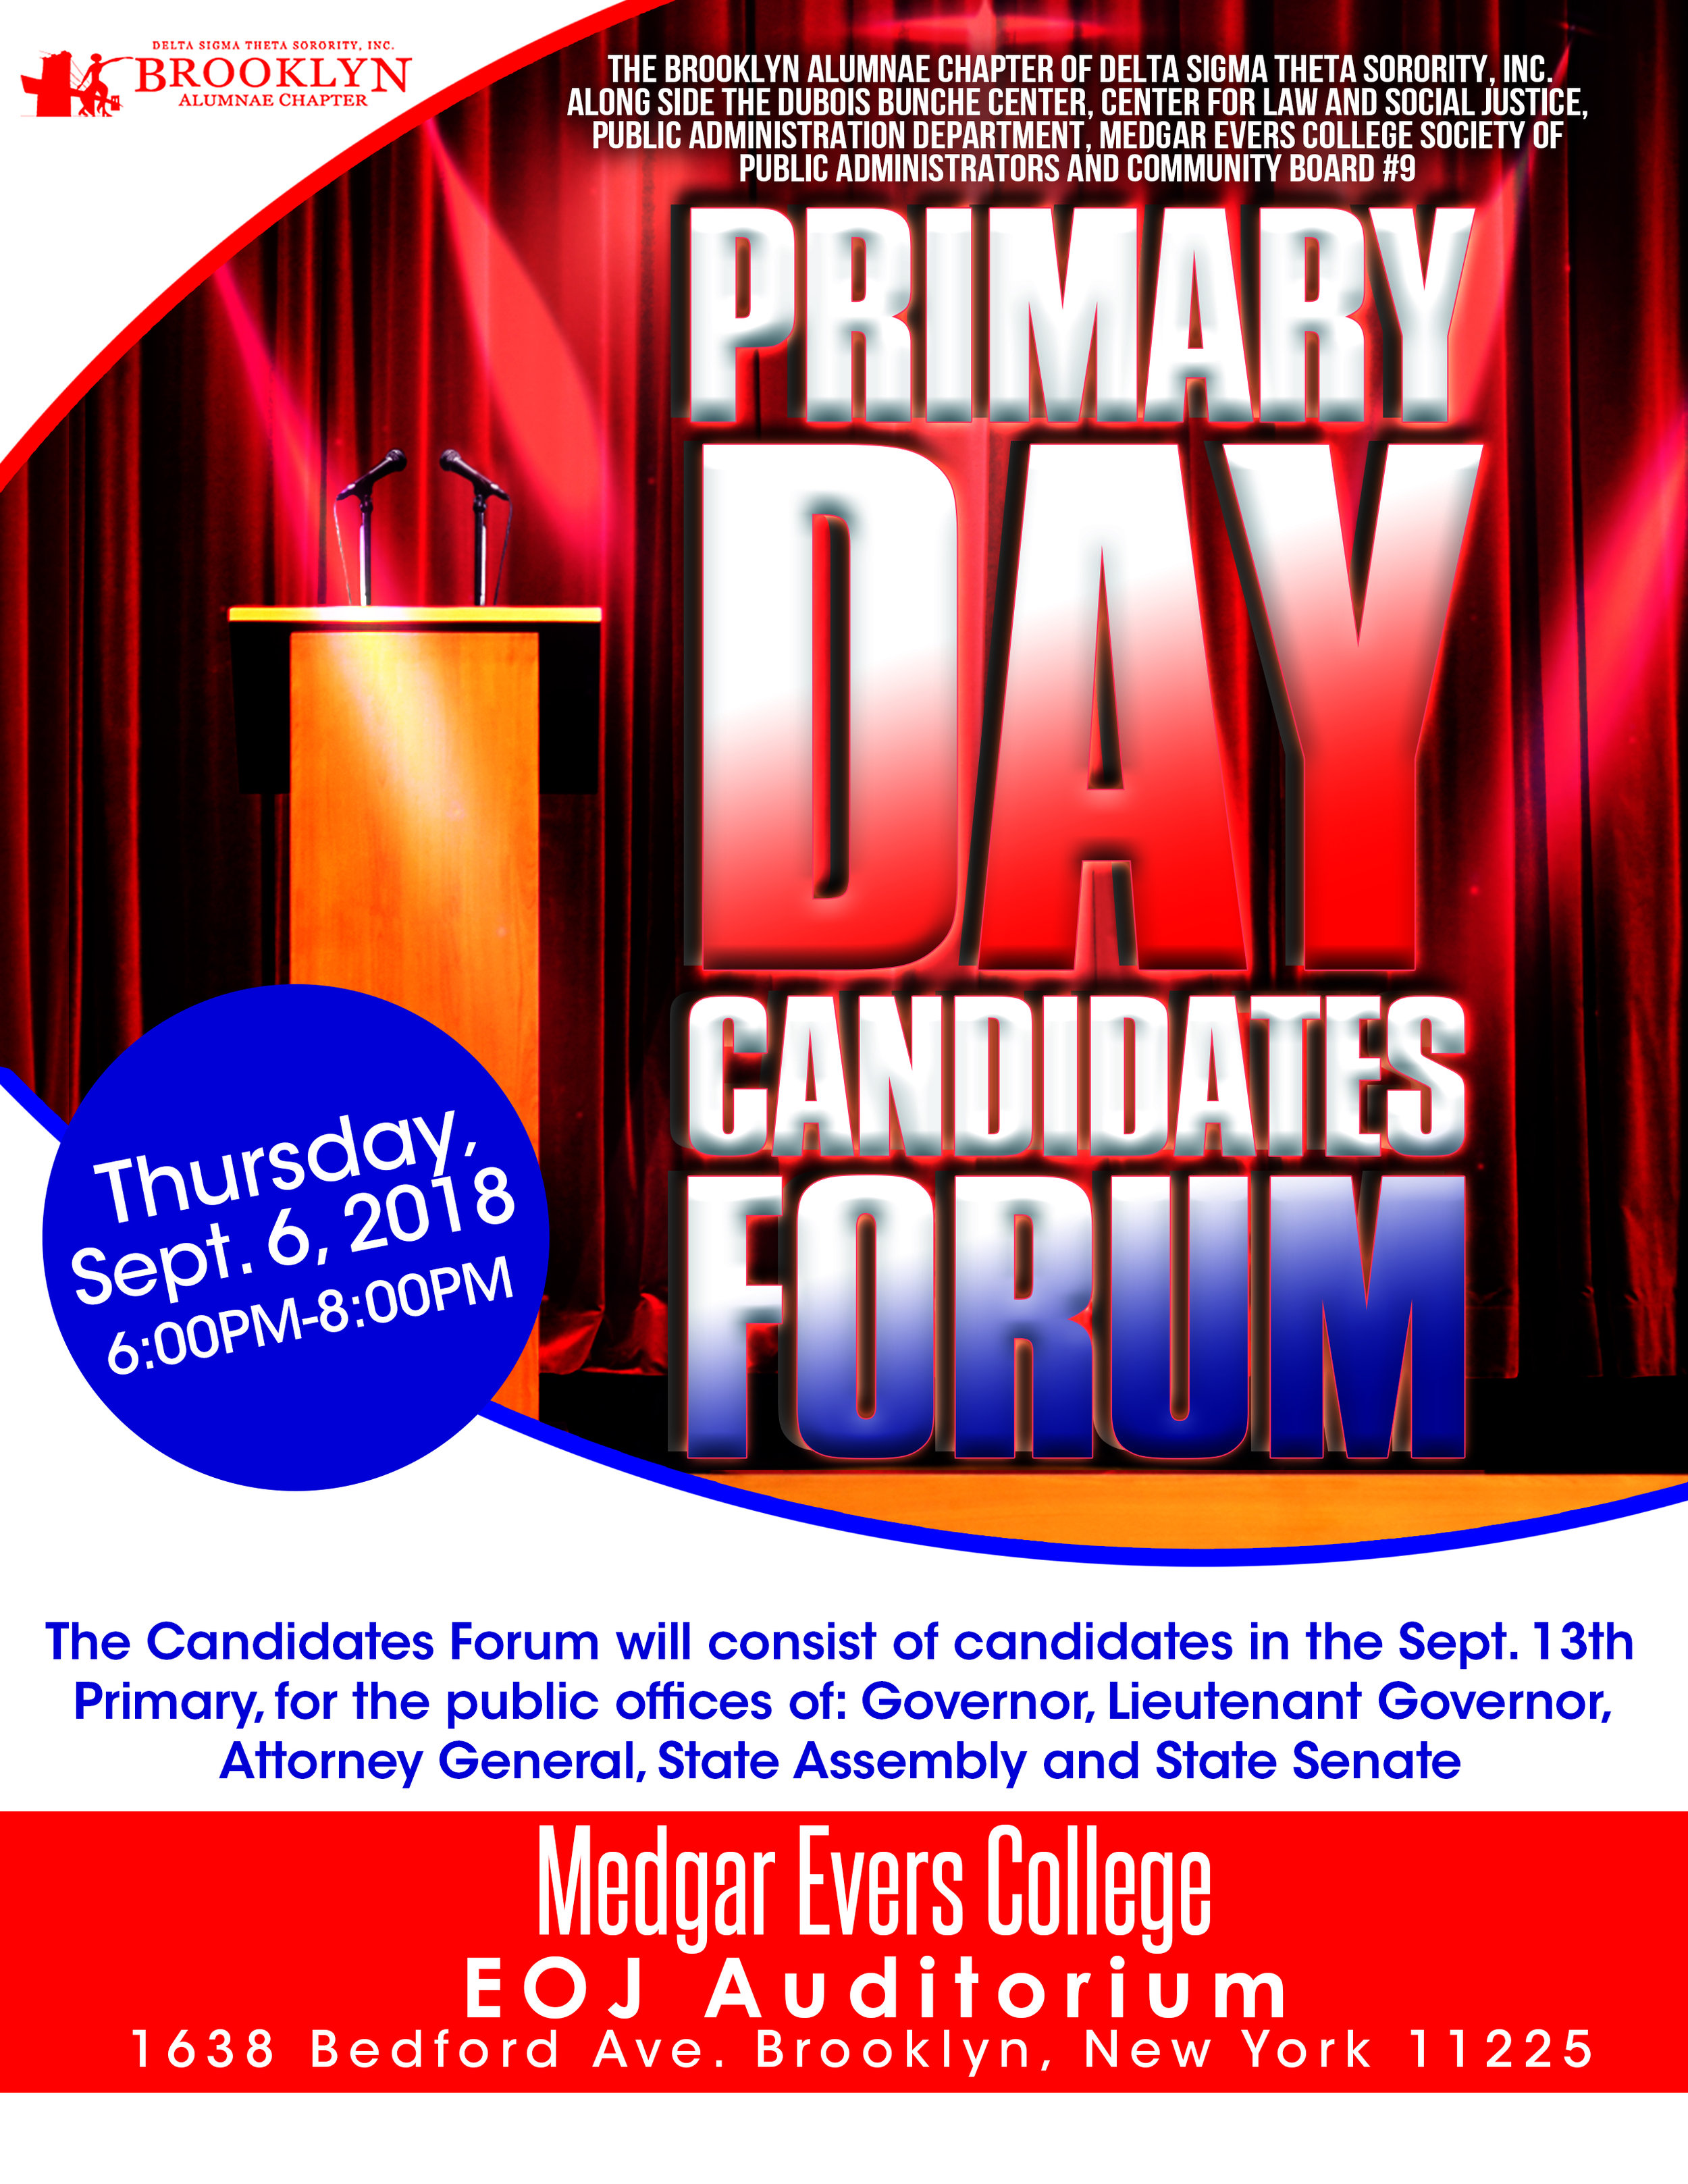 primary day candidate forum.jpg